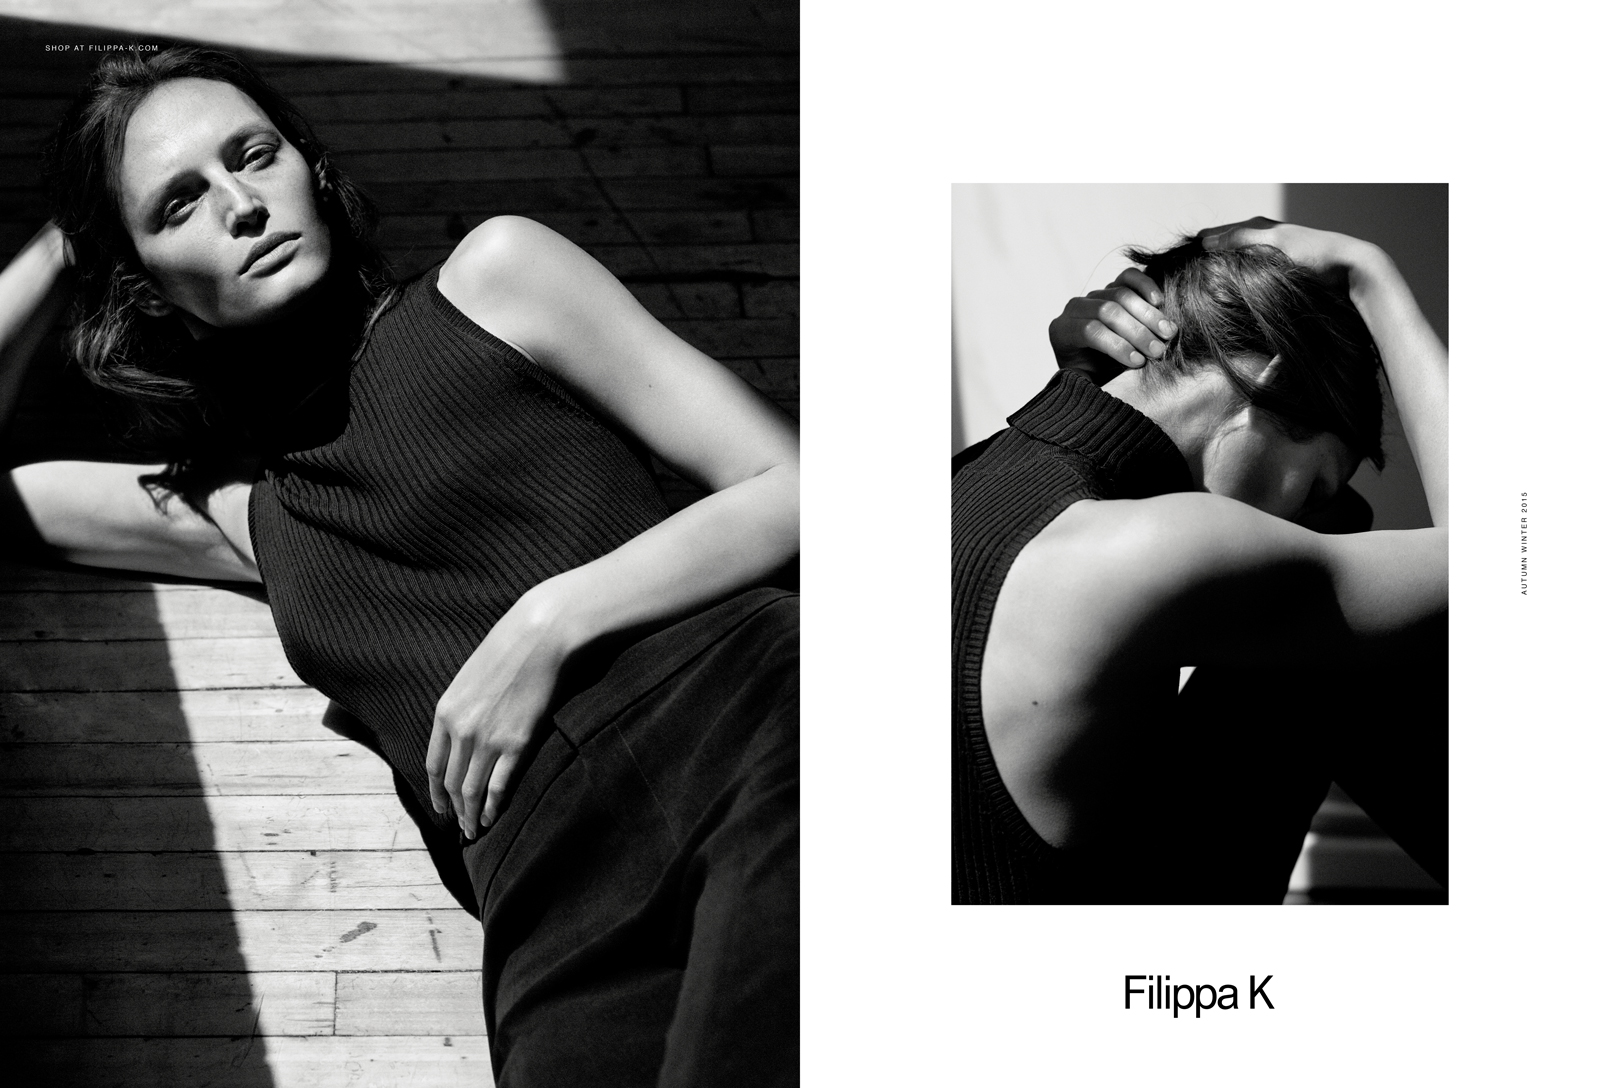 fk_aw15_dps-layout